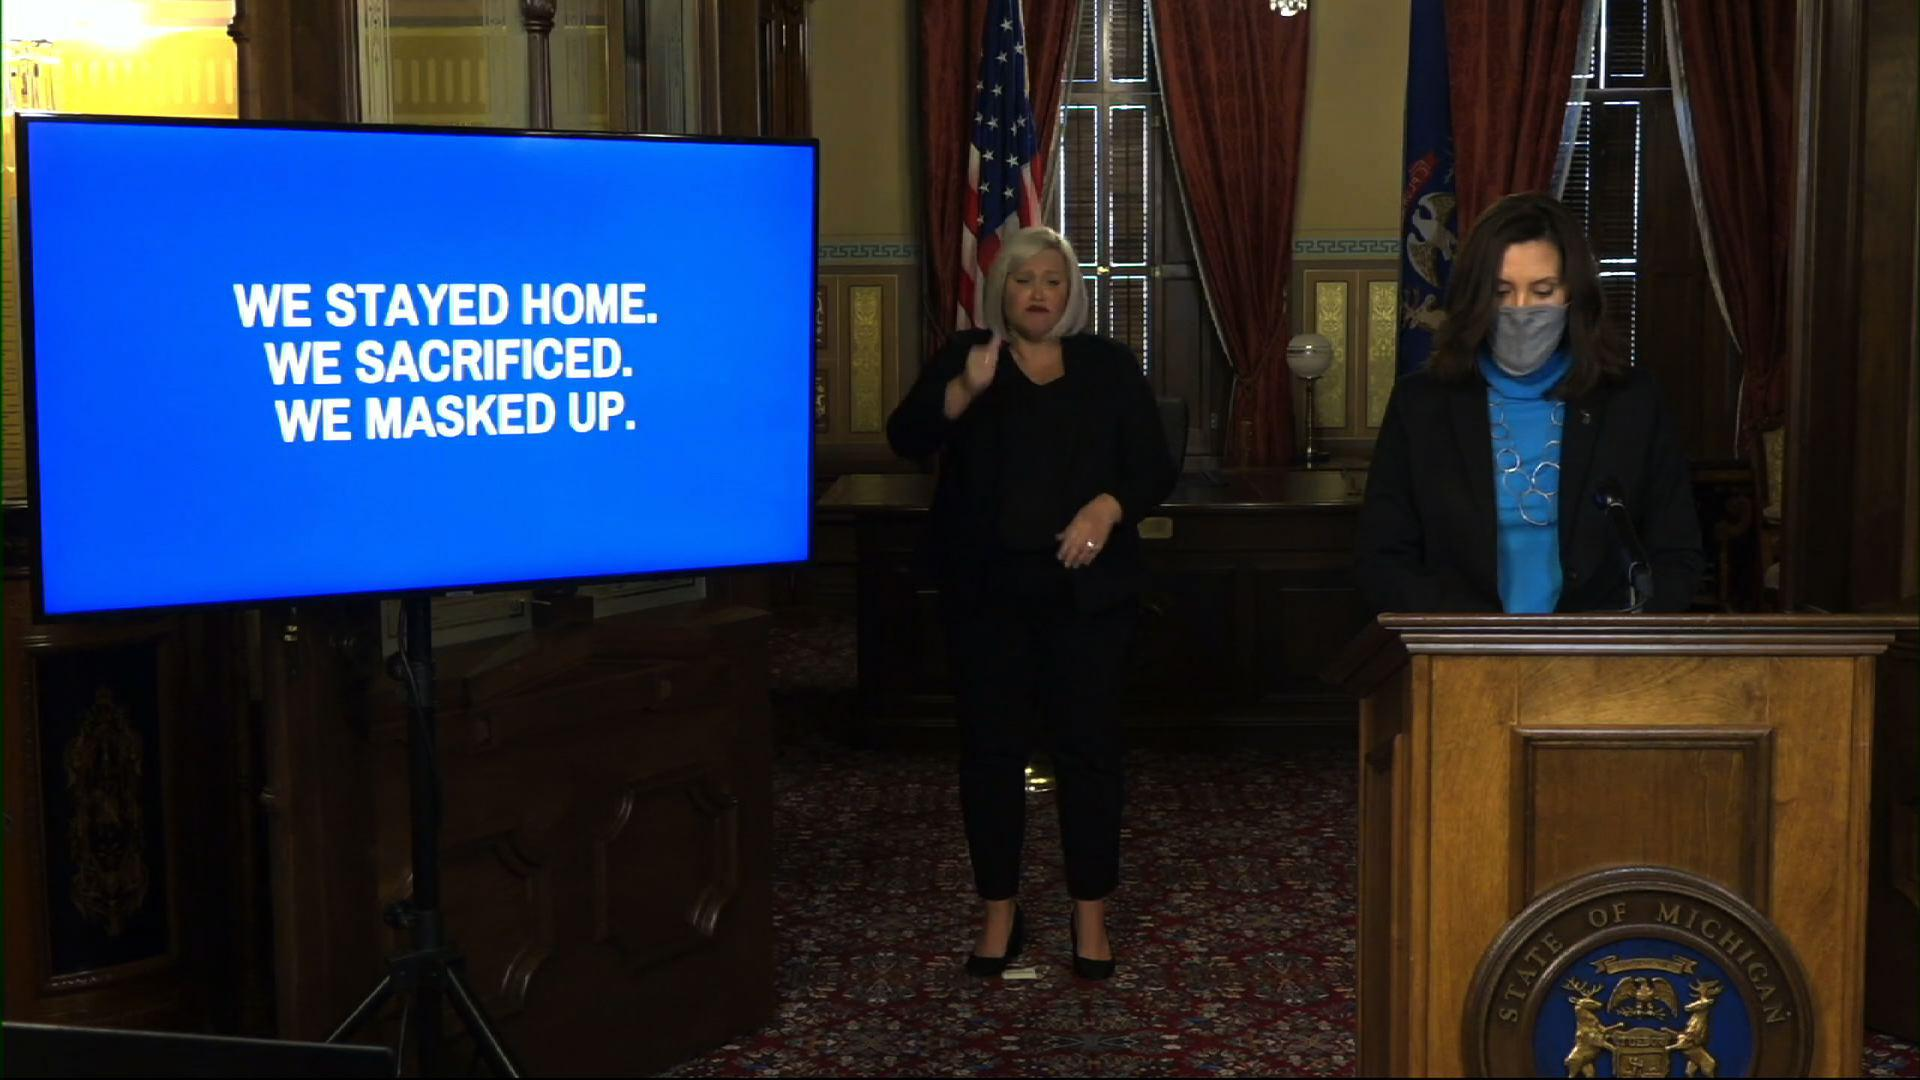 New Michigan Covid 19 Restrictions Begin Wednesday What We Know